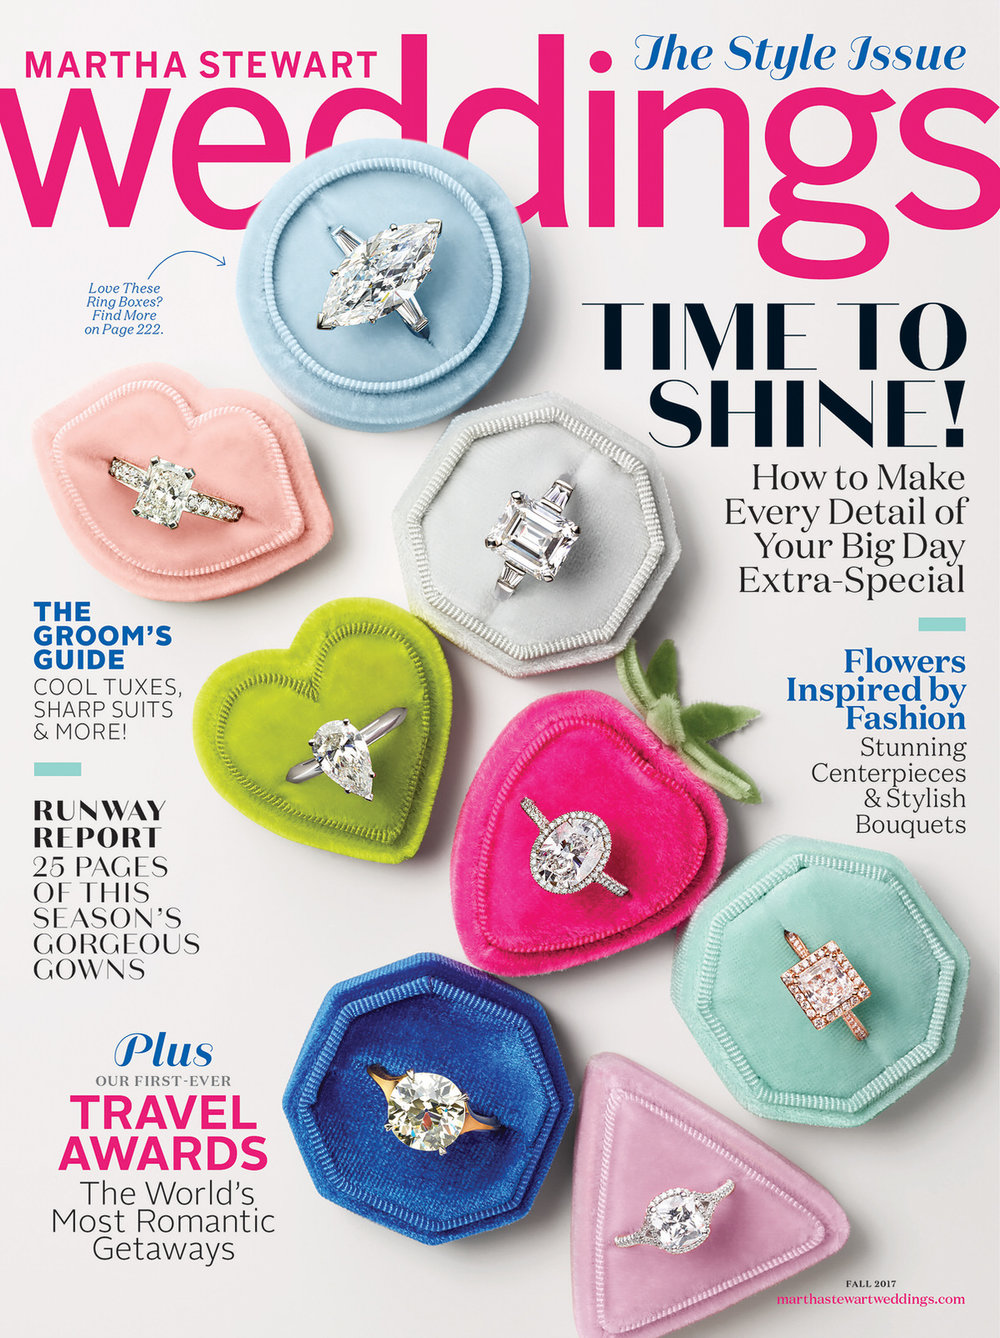 MSW1817_Cover-1.jpg